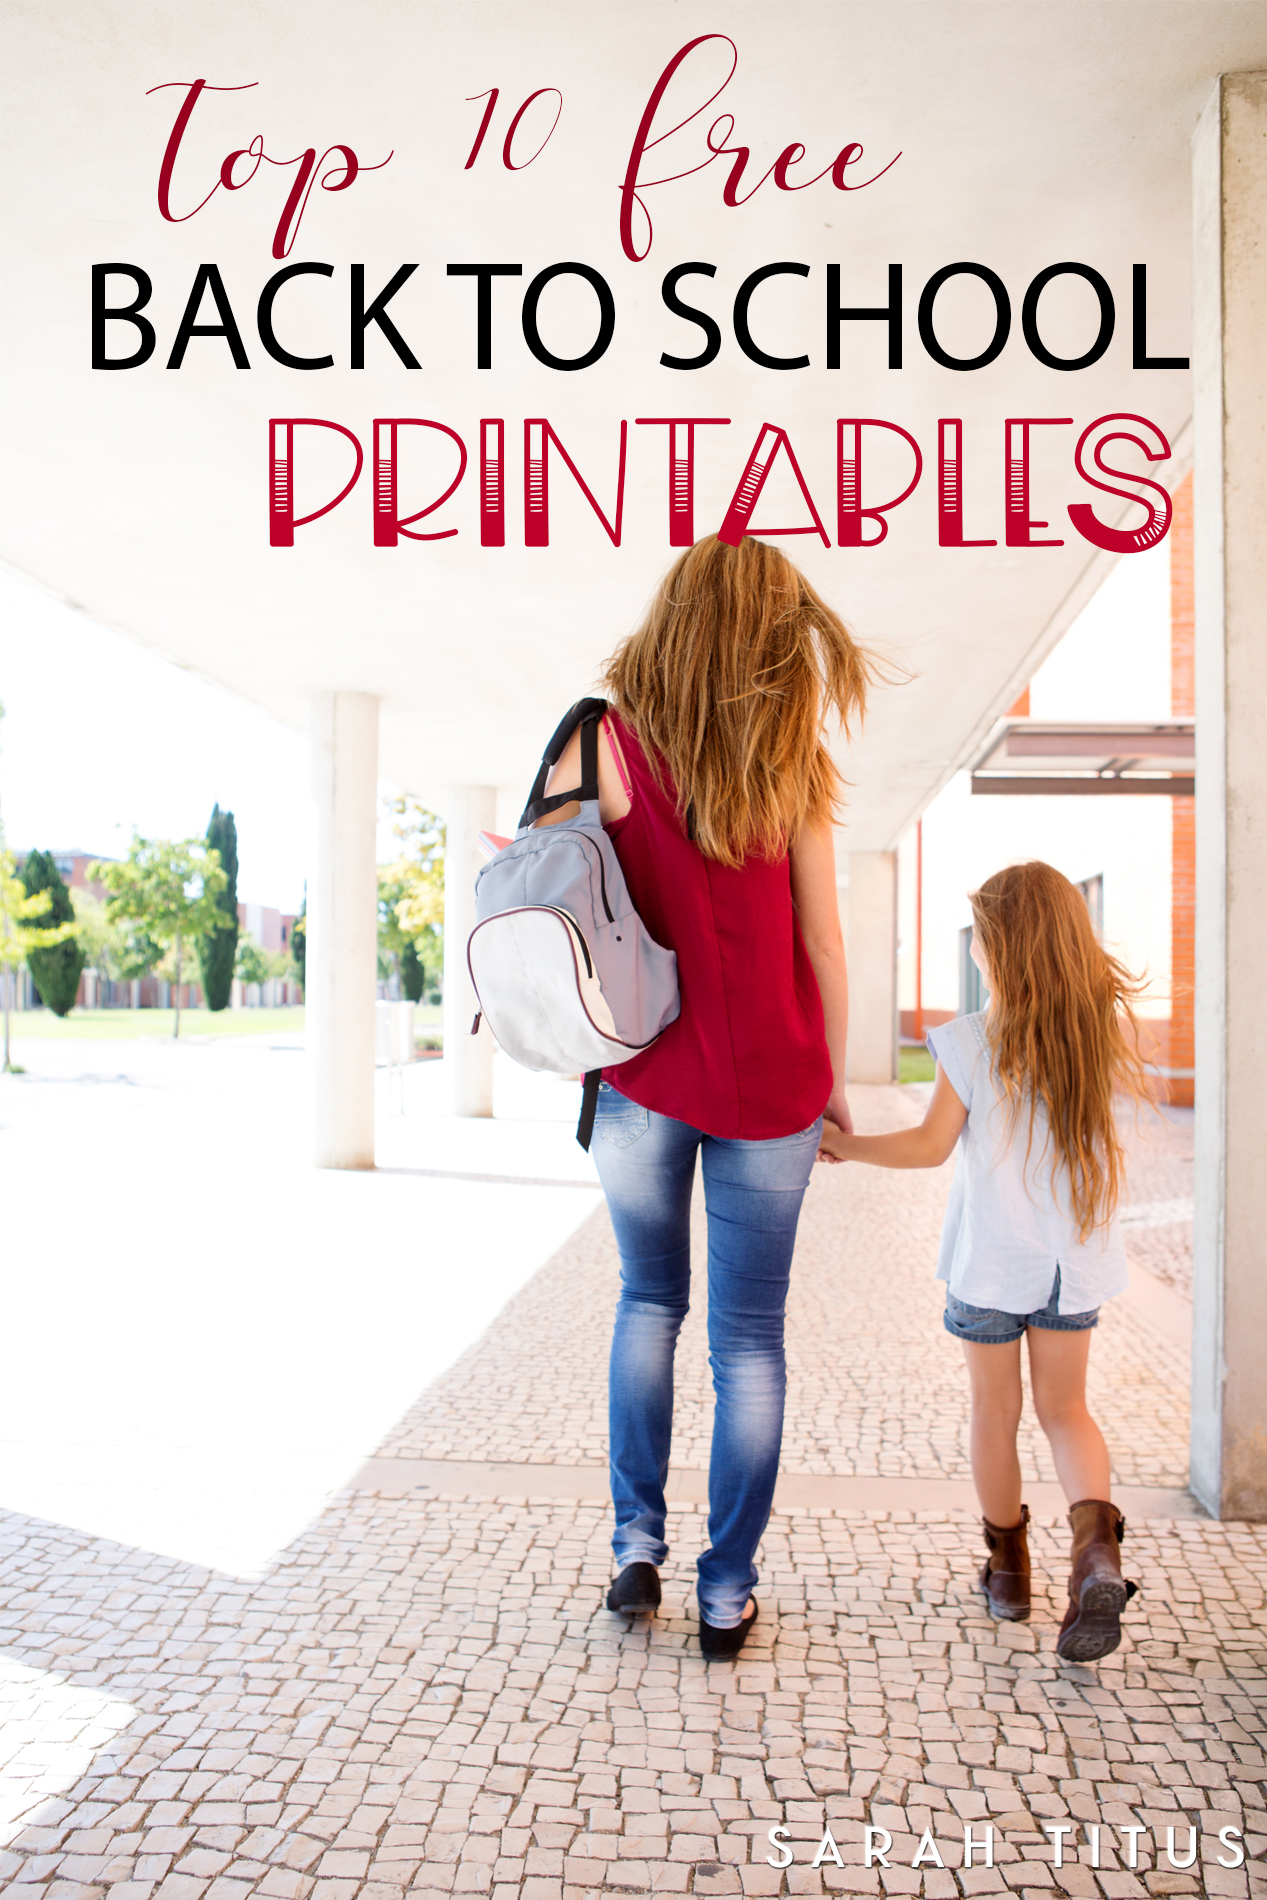 Sending your kids back to school isn't always easy! Especially if they are off to Kindergarten. Create amazing memories this school year with the these Top 10 Free Back to School Printables! #backtoschoolprintables #schoolprintables #freeschoolprintables #freebacktoschoolprintables